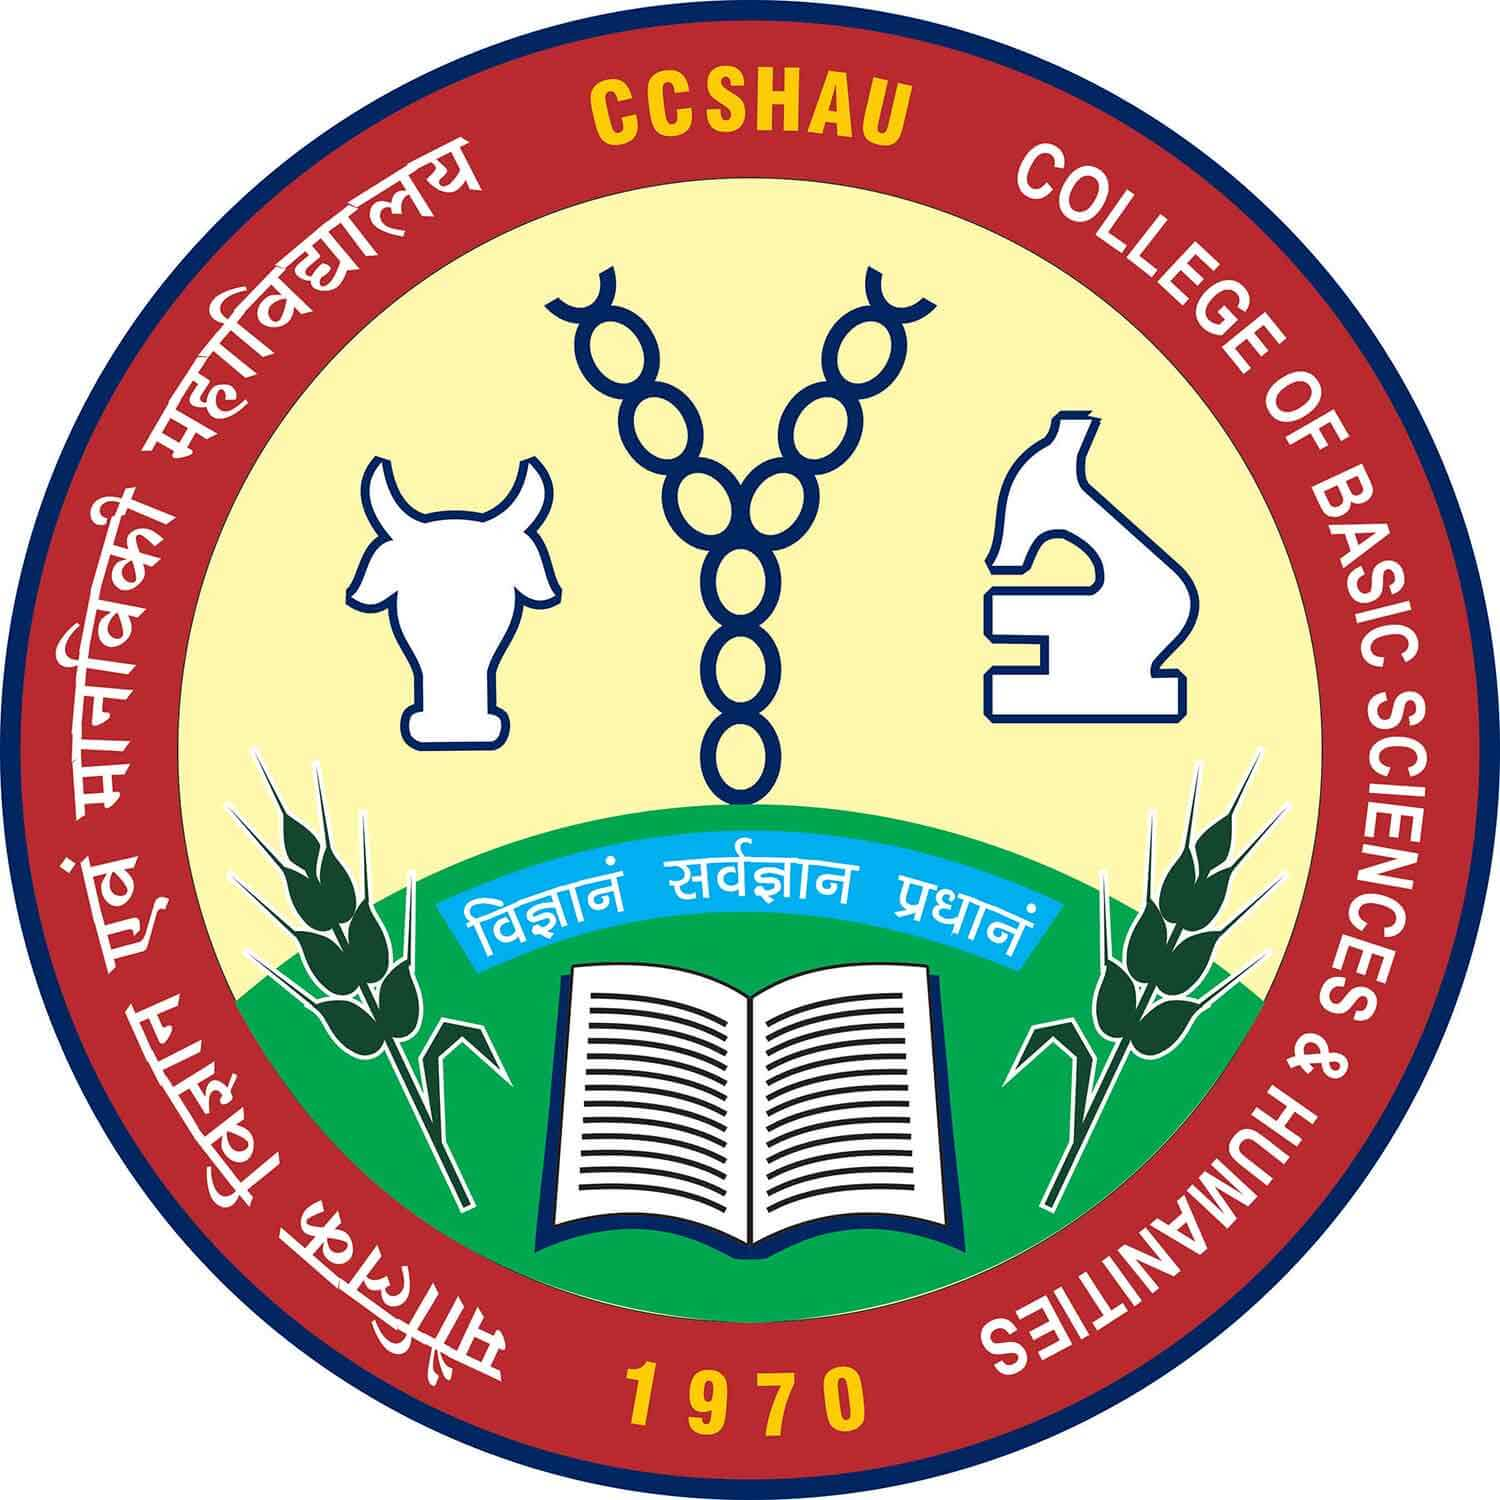 CBSH-College of Basic Sciences and Humanities Hisar